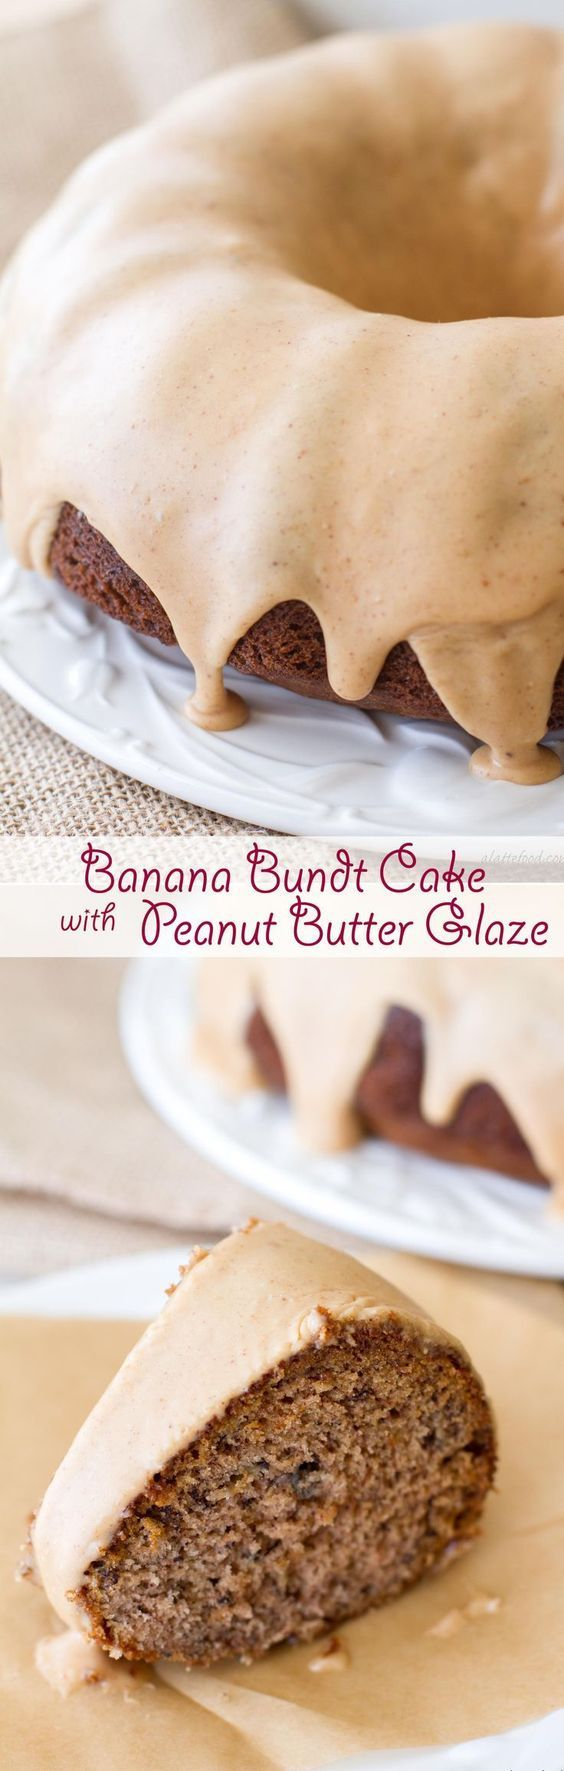 This easy banana bundt cake recipe is a cross between a sweet banana bread and a sweet banana cake! Topped with a peanut butter glaze, this cake is sure to be a hit!